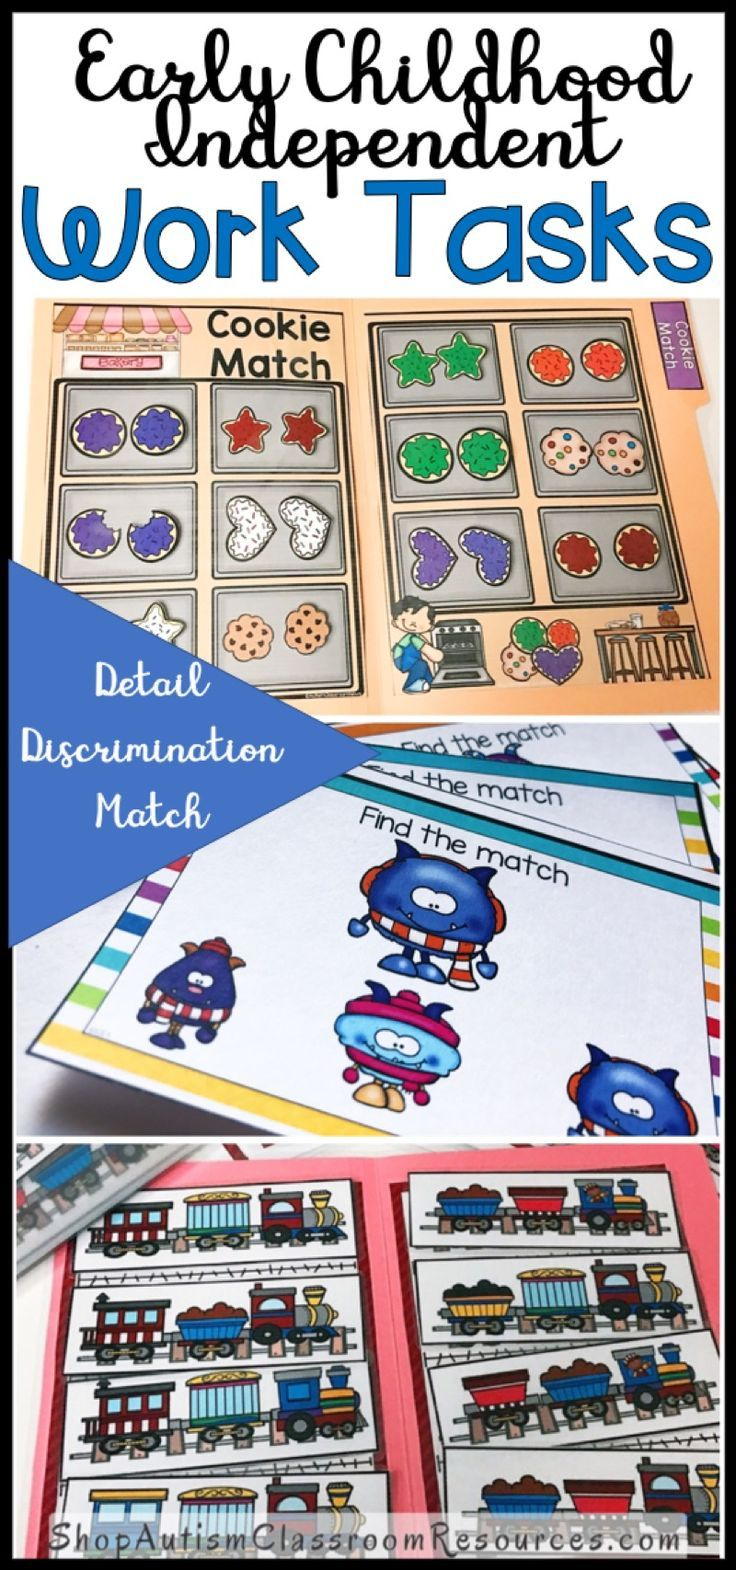 You can never have too many independent work tasks If you are looking for work that challenges your early learners while still being simple enough to do independently, you will love these task boxes. Students have to pay attention to detail and multiple characteristics to get the match right. Great for kindergarten, preschool or any early childhood setting as well as for special education independent work. Includes task cards and file folders so you can switch it up.